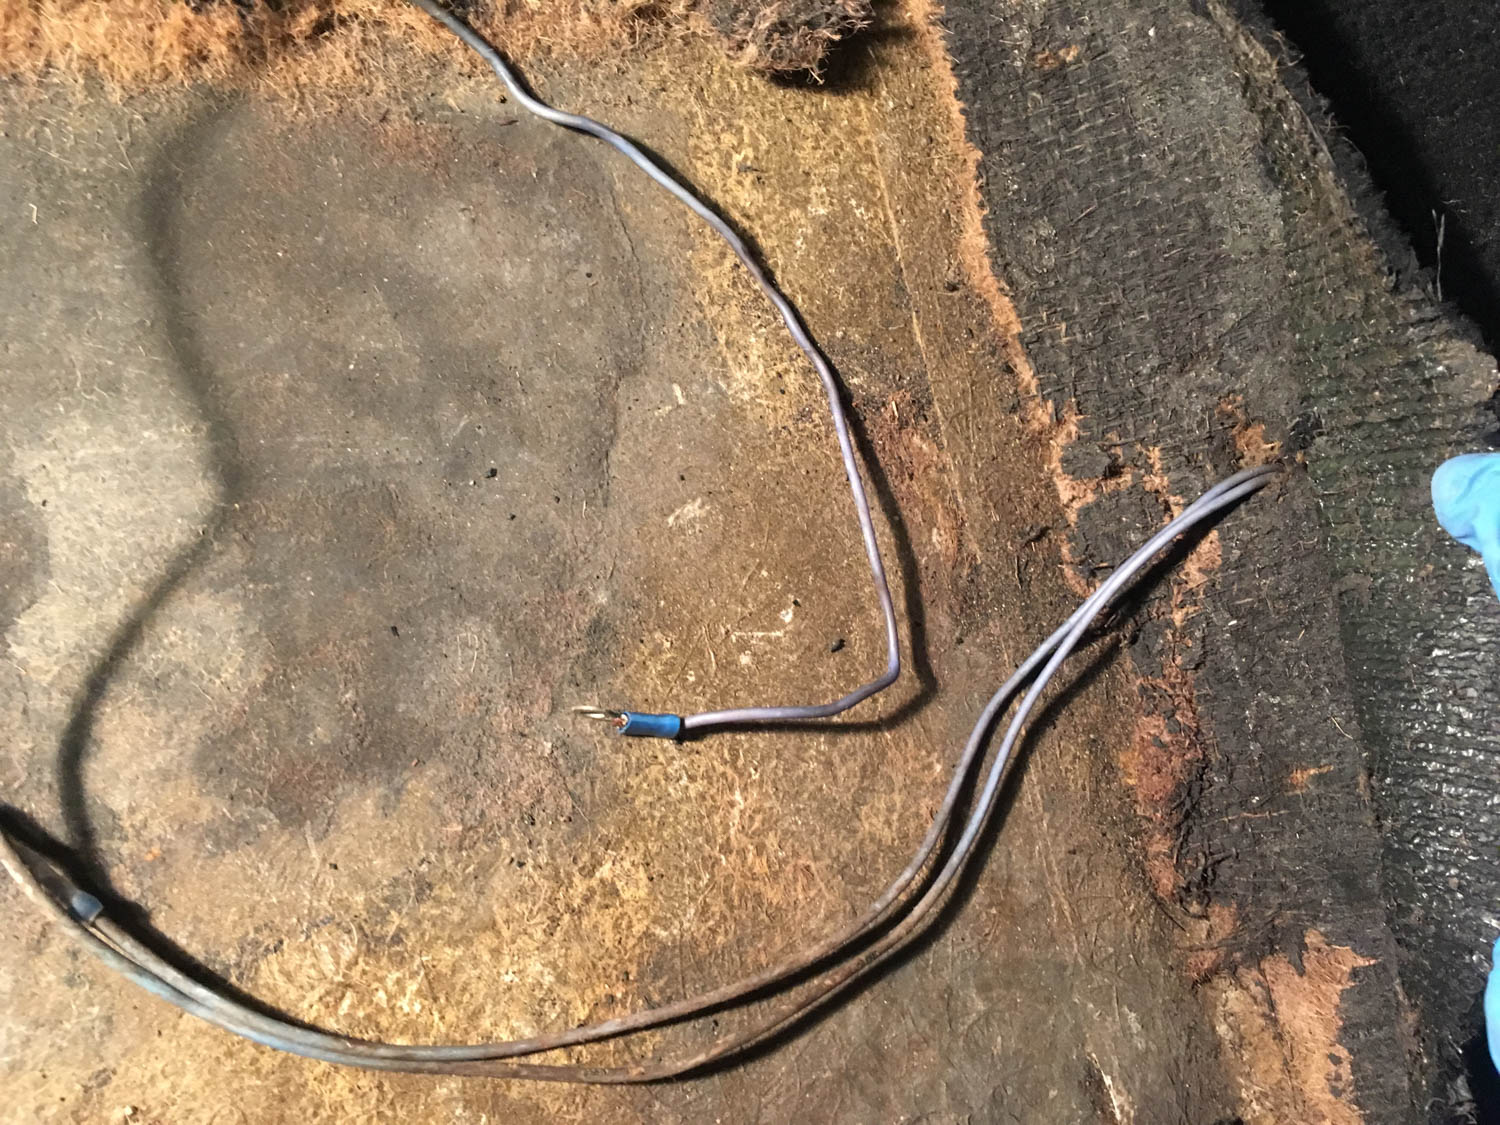 At least on a fiberglass-bodied car, wires like this don't ground out.